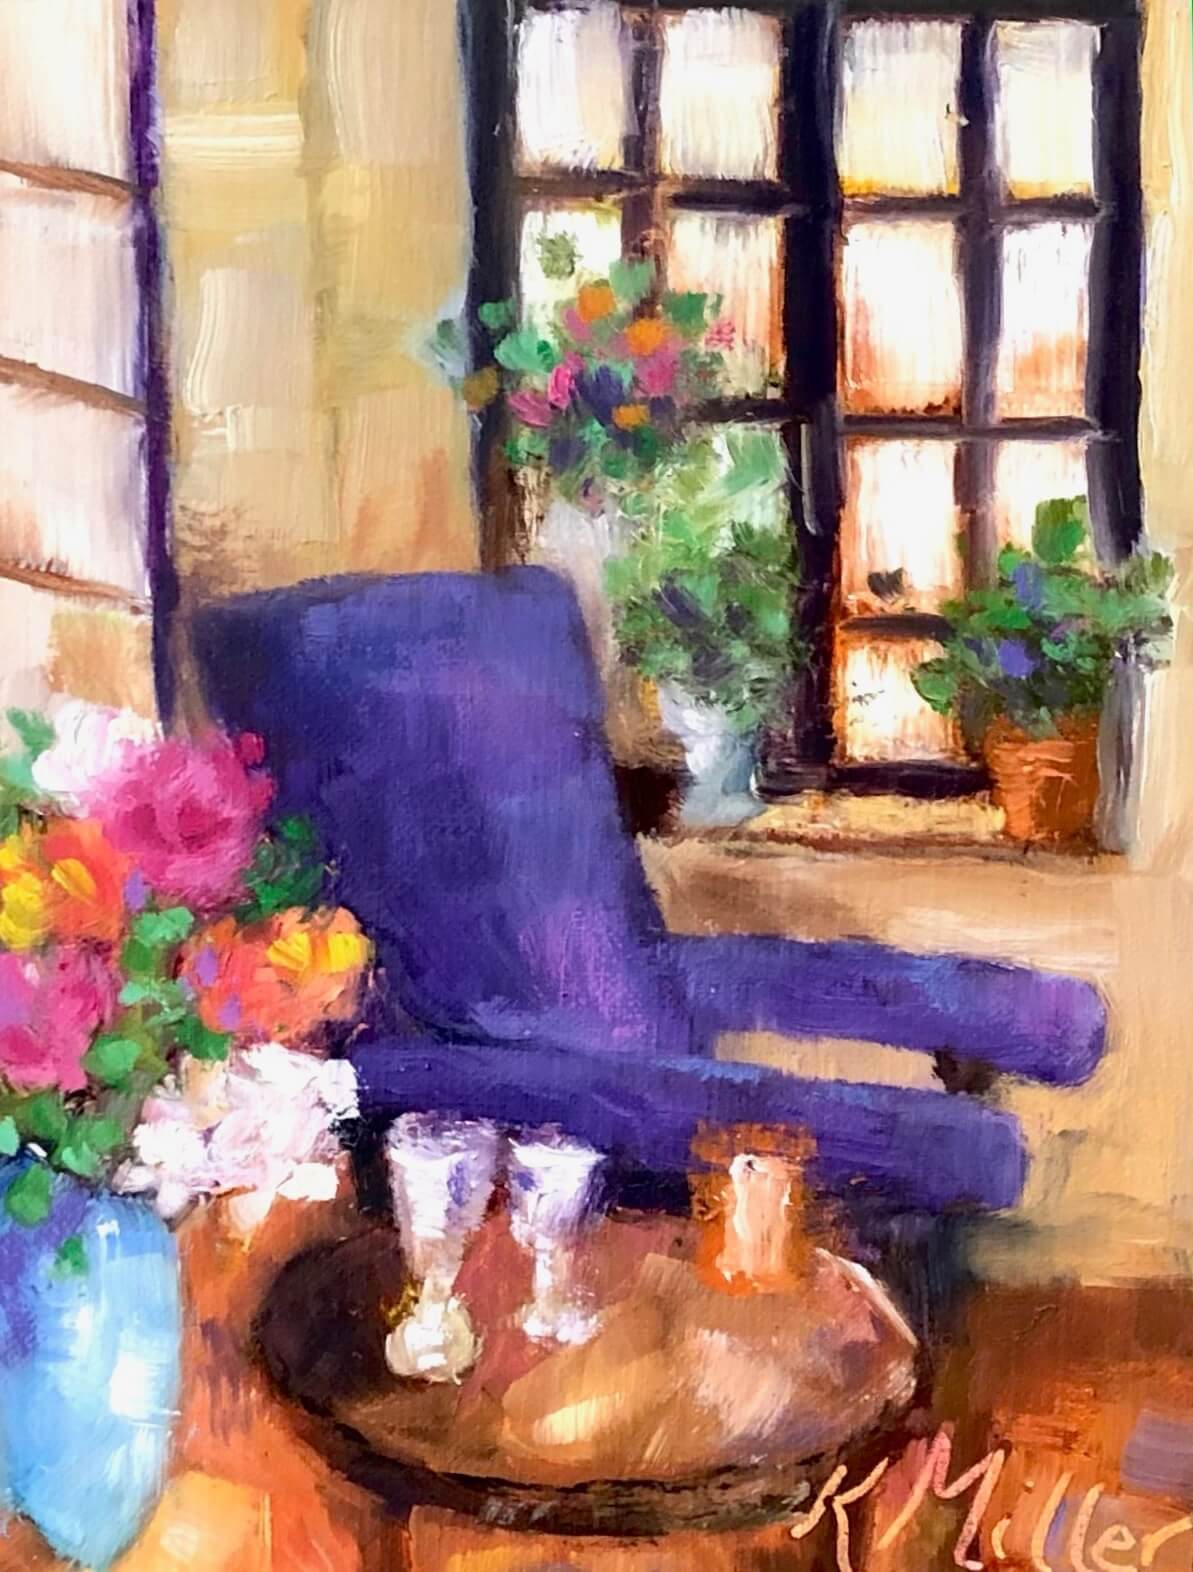 Purple chair in French Orangery original painting by Kathy Miller